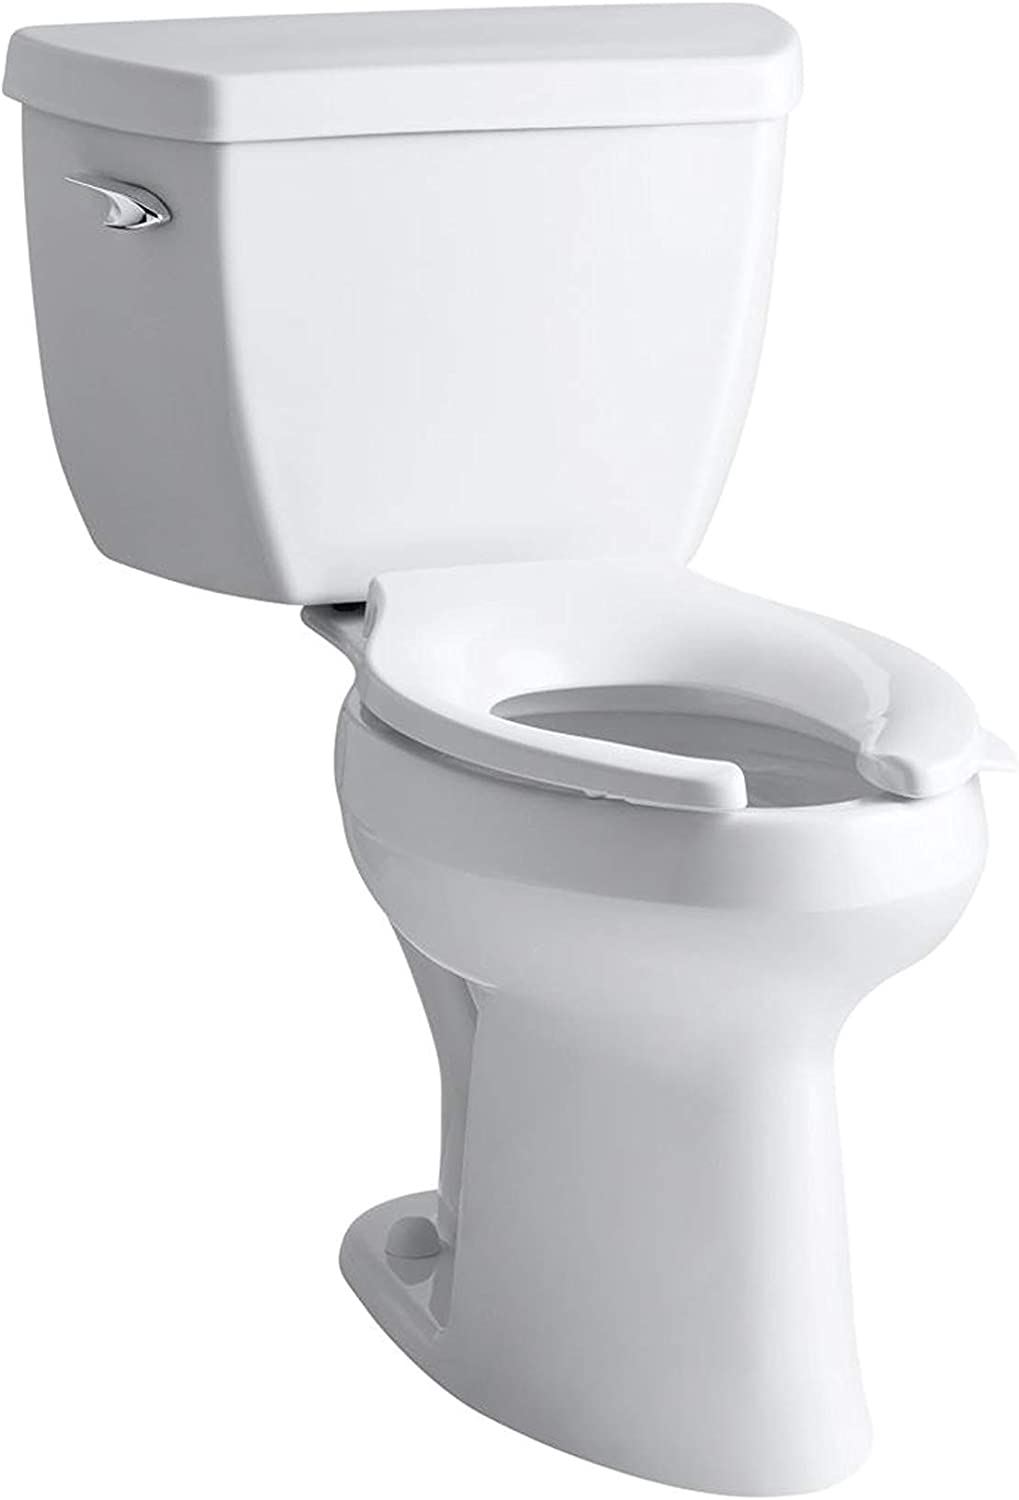 best comfort height toilets: Kohler K-3493-0 Highline Toilet